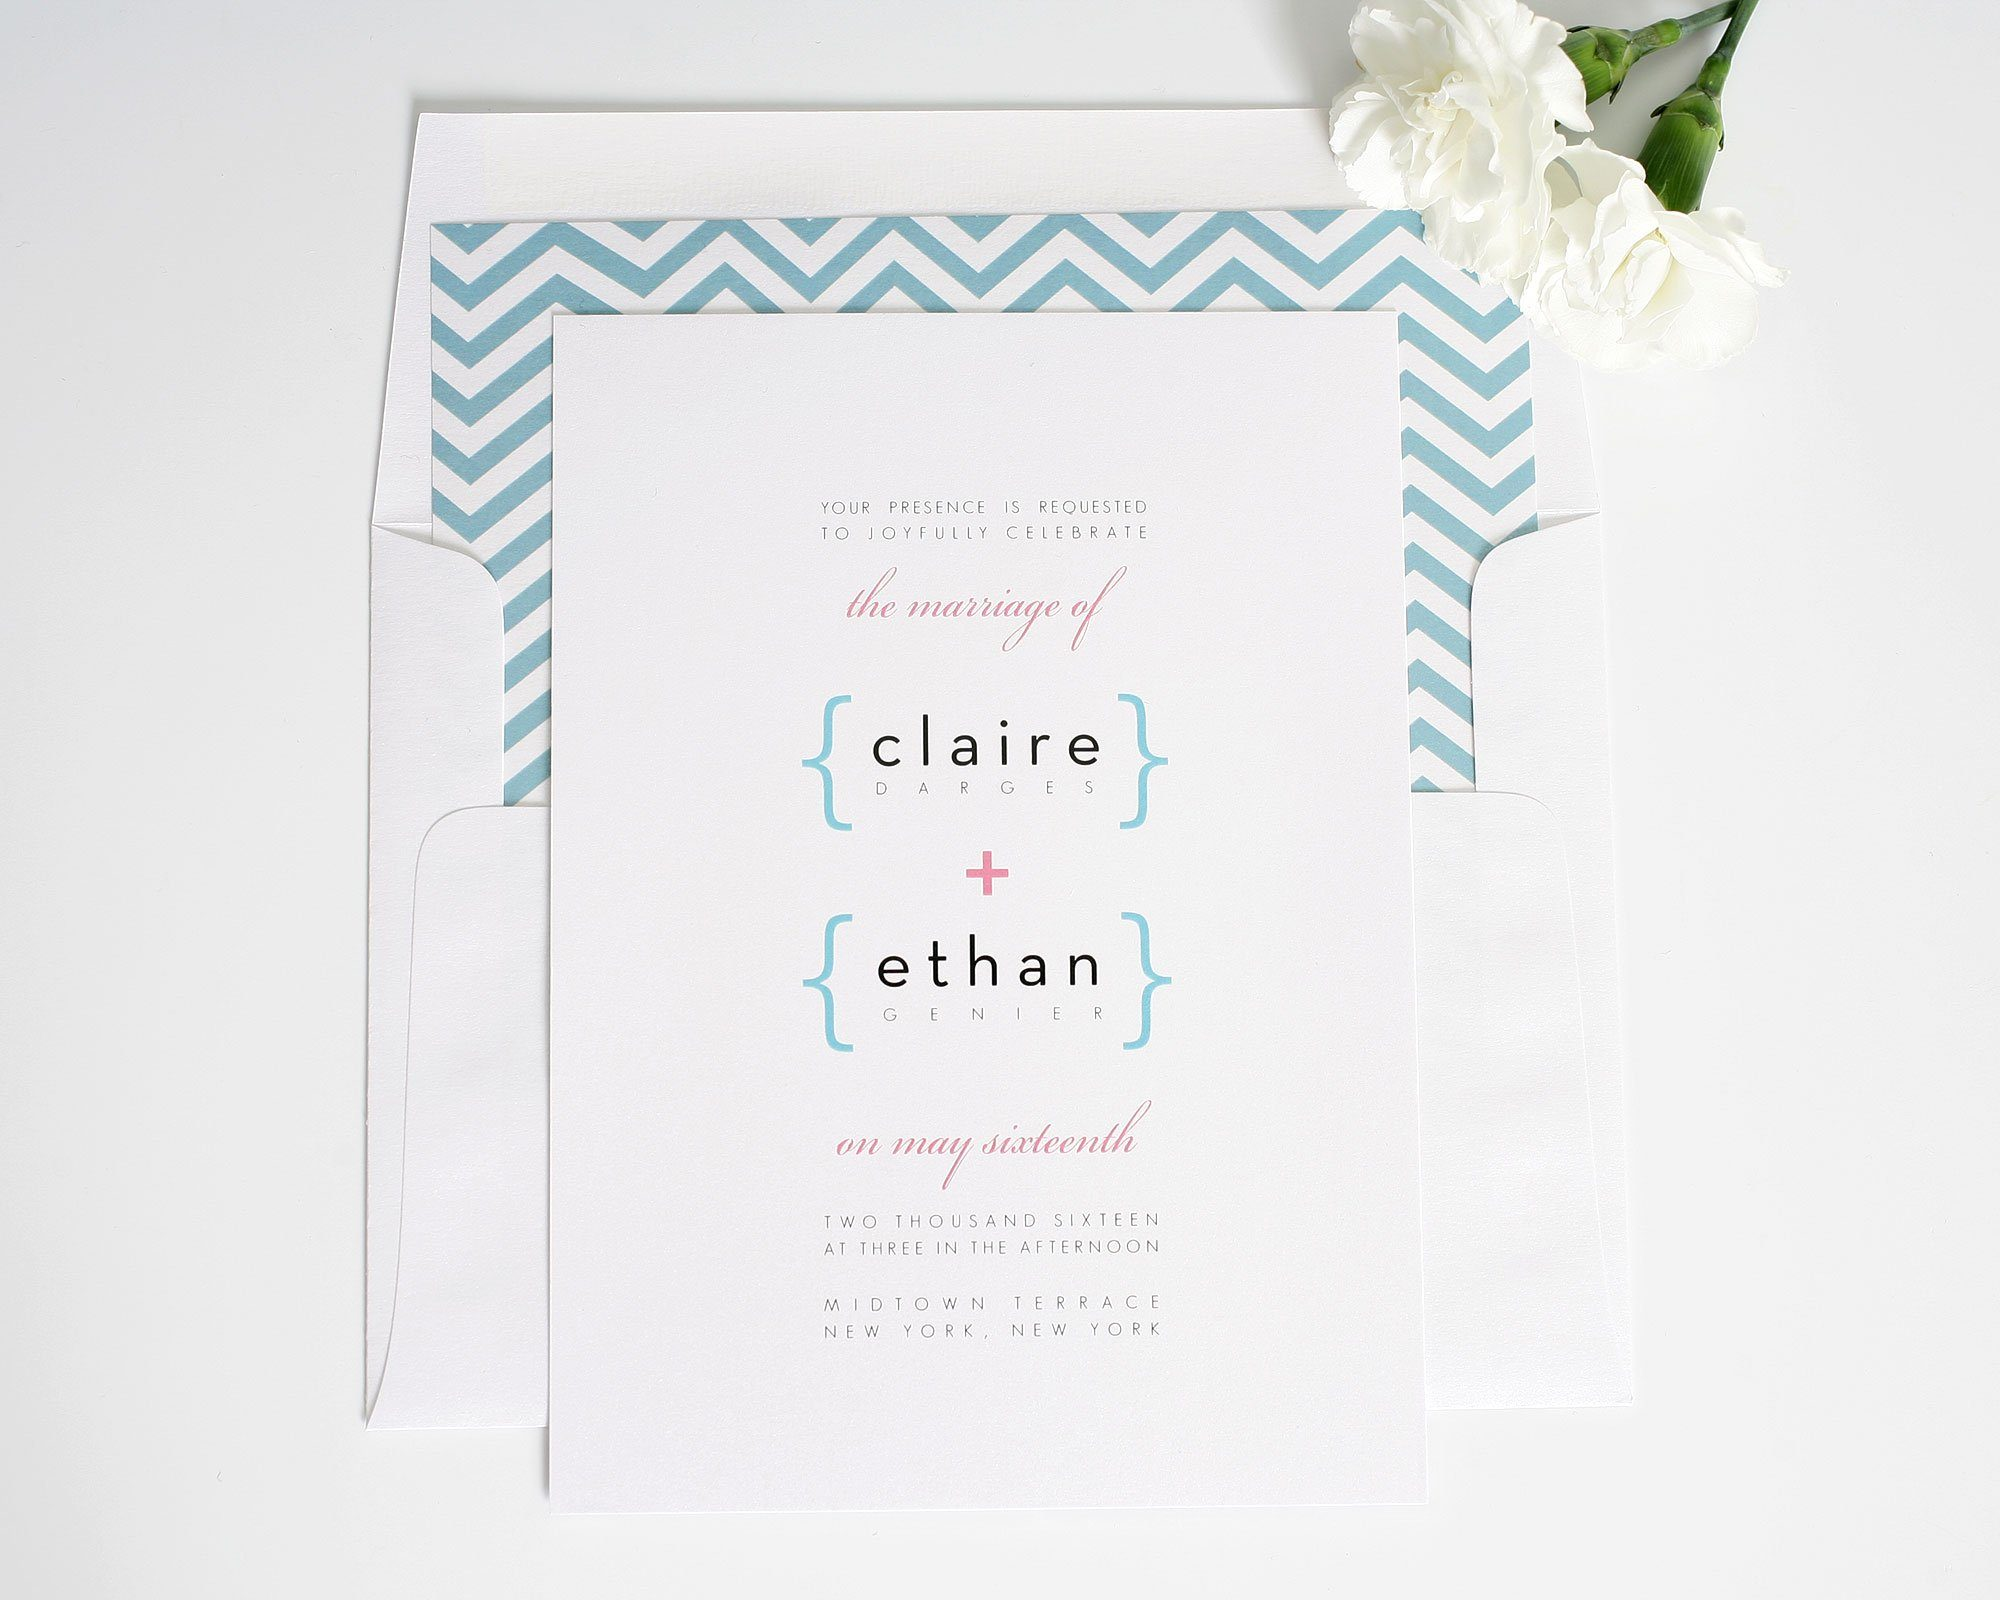 Modern math wedding invitations with chevron accents